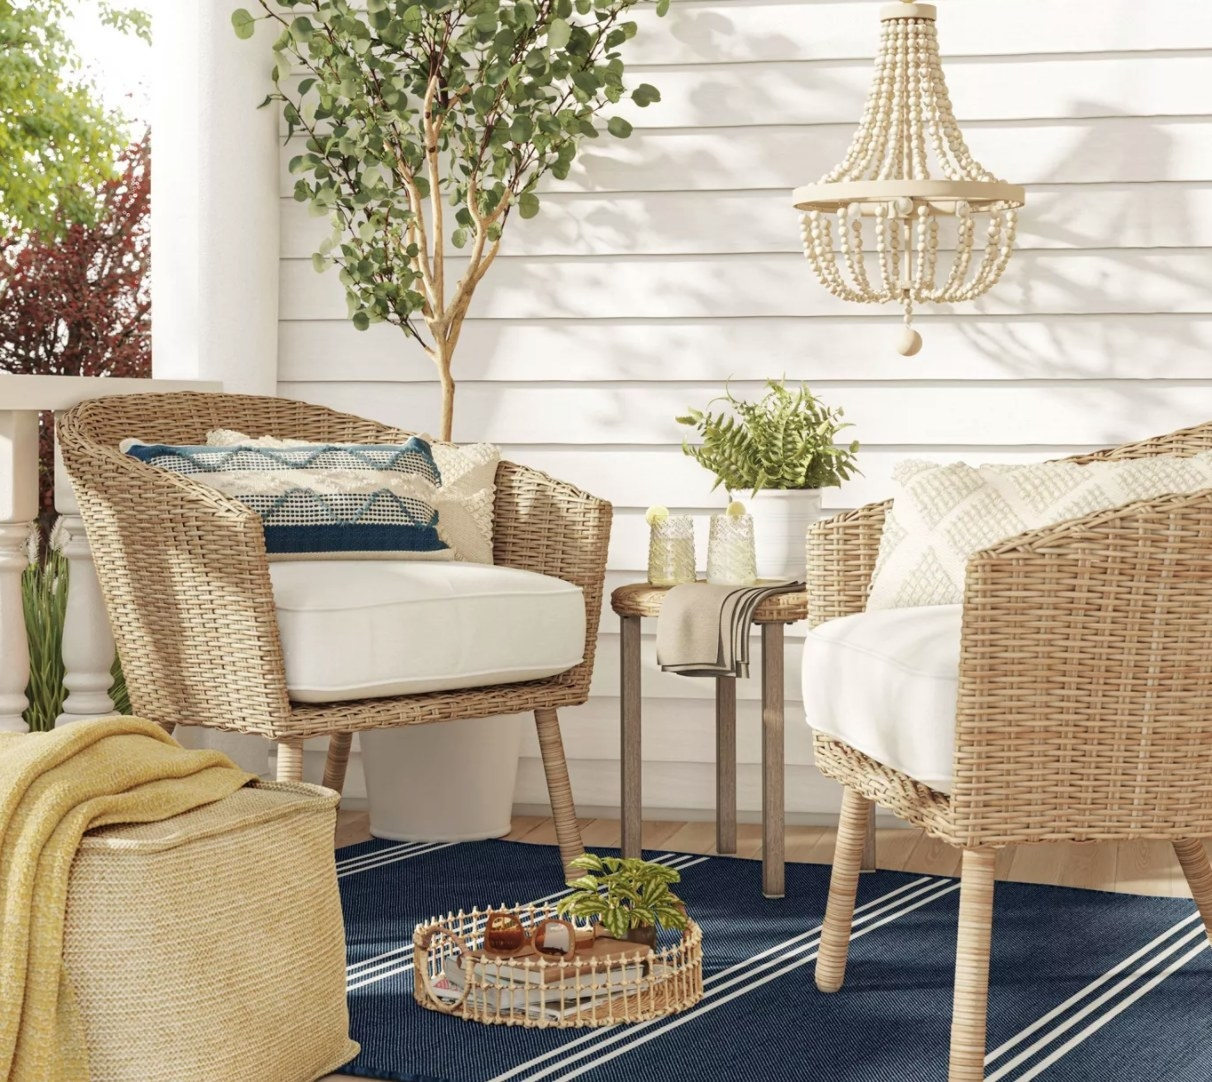 The neutral wicker chairs